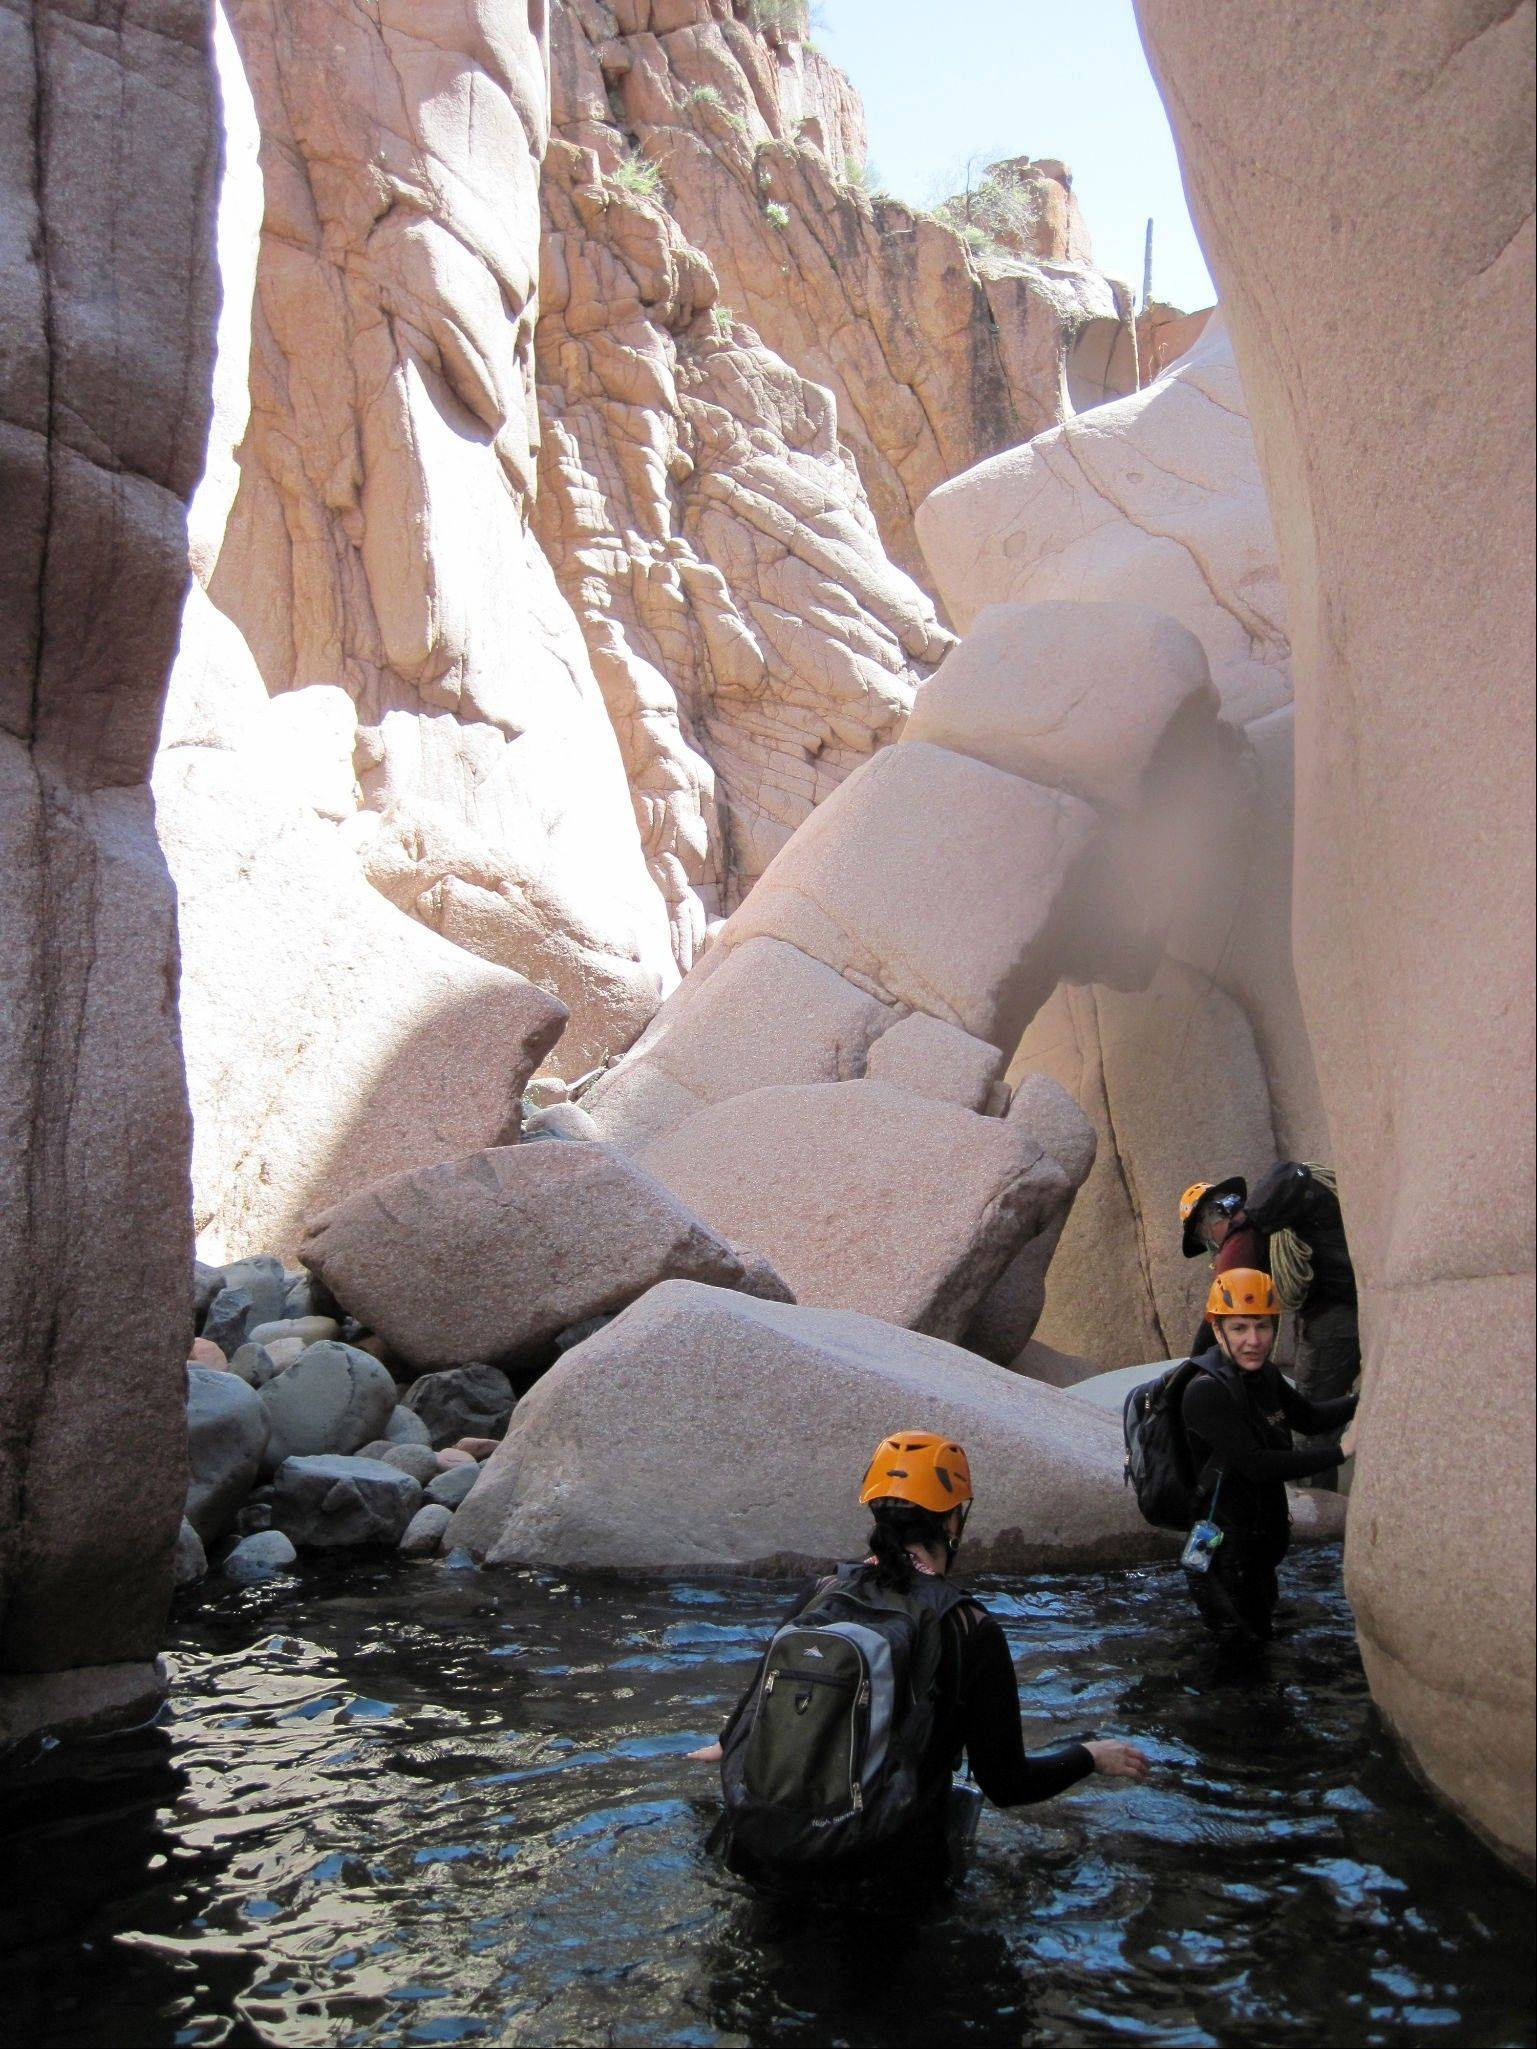 Hikers in wet suits and helmets wade in Salome Creek in Salome Canyon, in Arizona's Tonto National Forest.